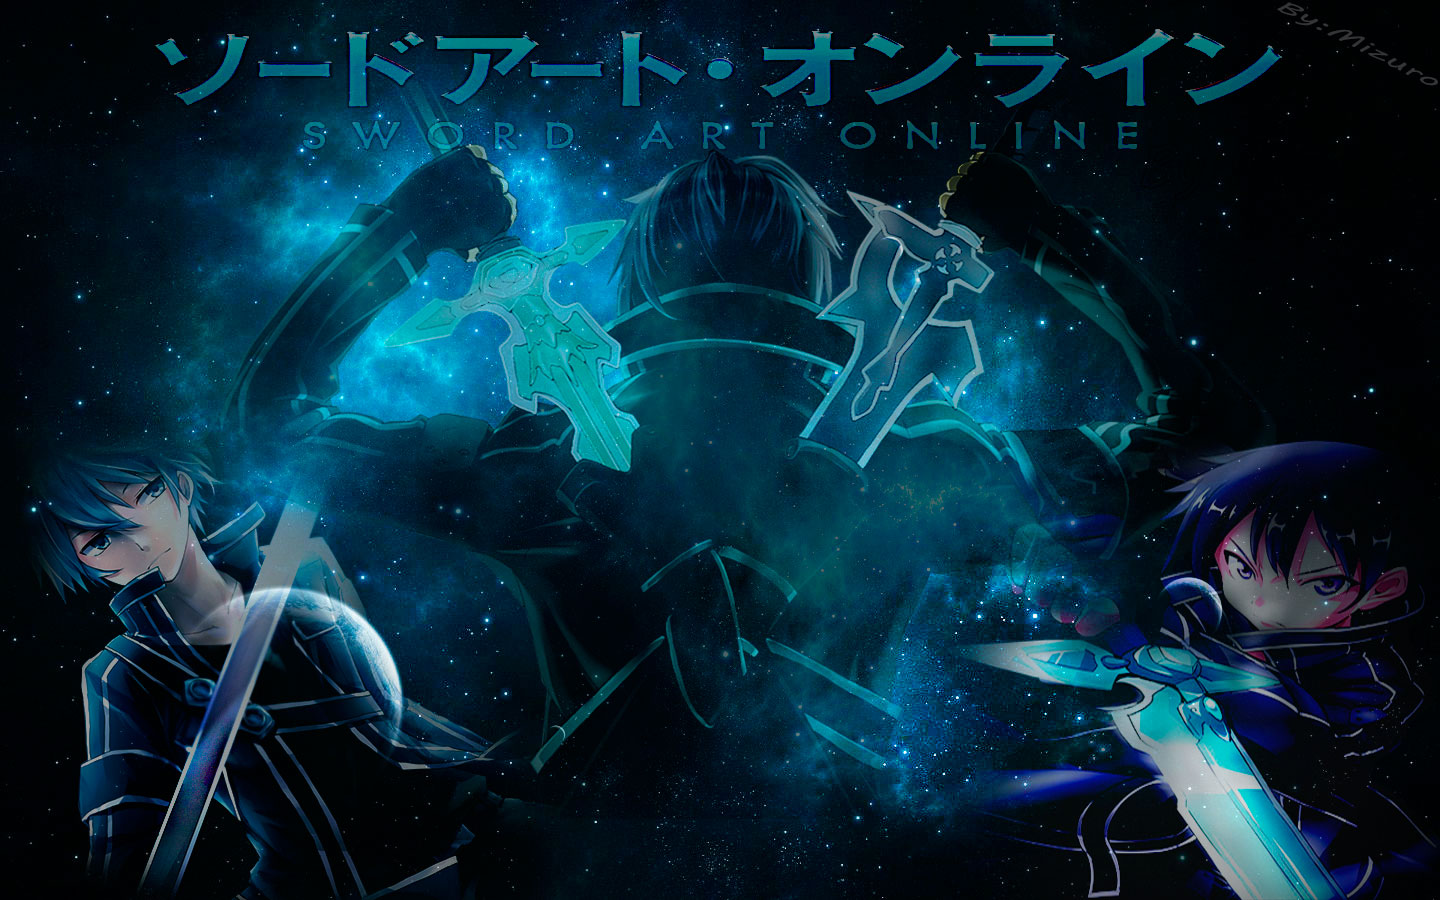 Wallpaper Sword Art Online Kirito by mizurinho on DeviantArt